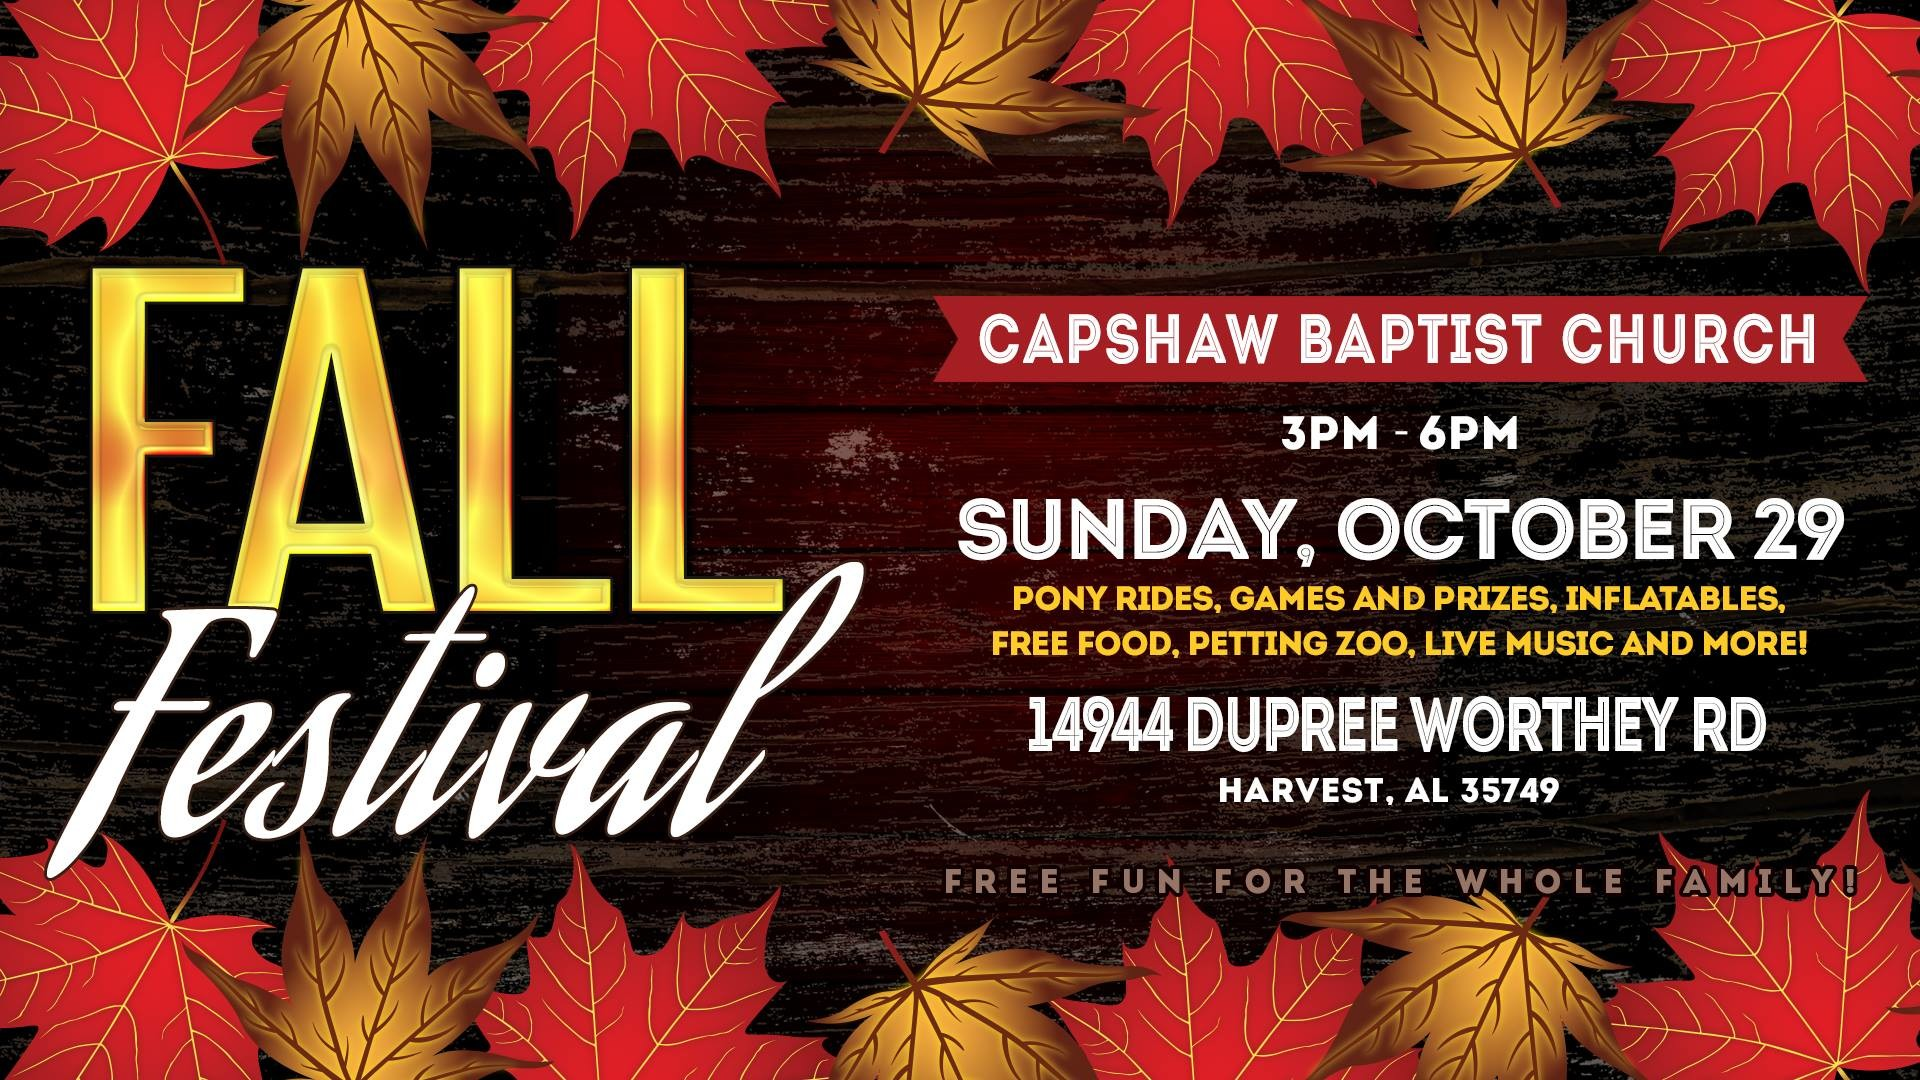 Res: 1920x1080, Capshaw Baptist Church; Phone: 256-232-7763: 14994 Dupree Worthey Road  Harvest, AL 35749 United States + Google Map